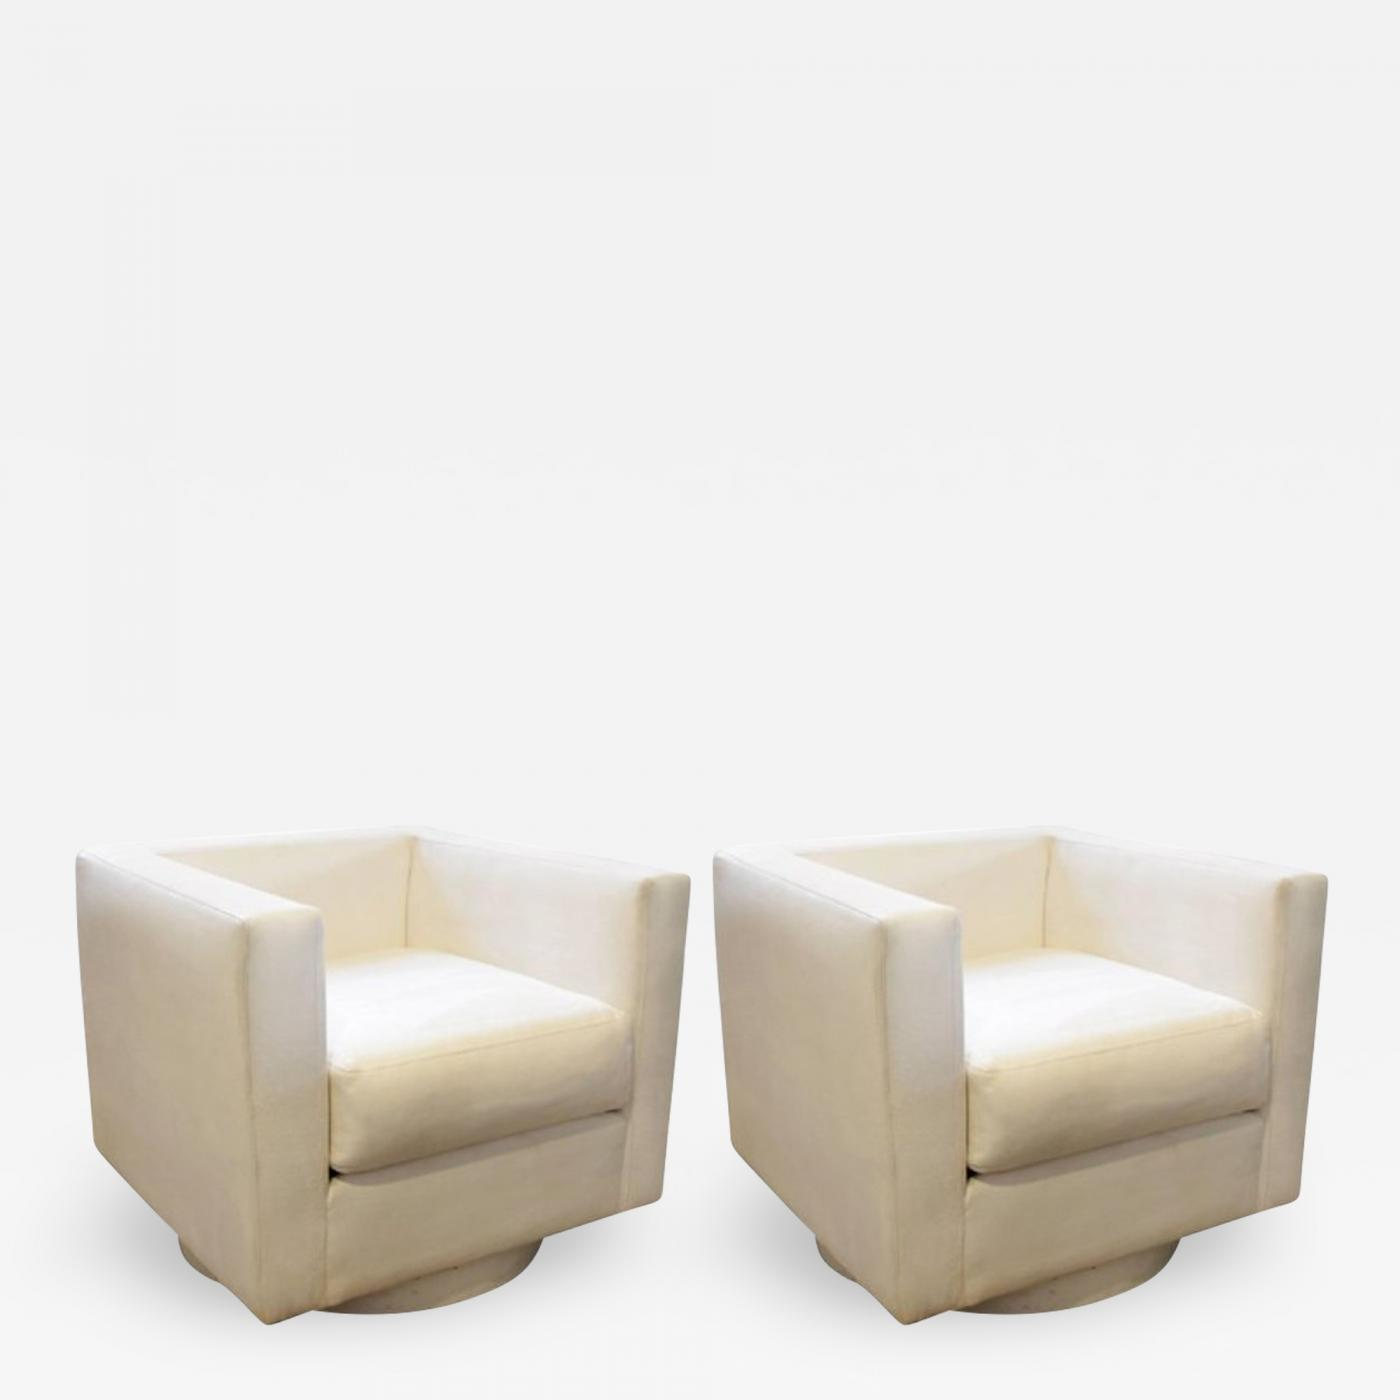 Upholstered Swivel Chairs Harvey Probber Set Of Two White Upholstered Tuxedo Swivel Chairs By Harvey Probber